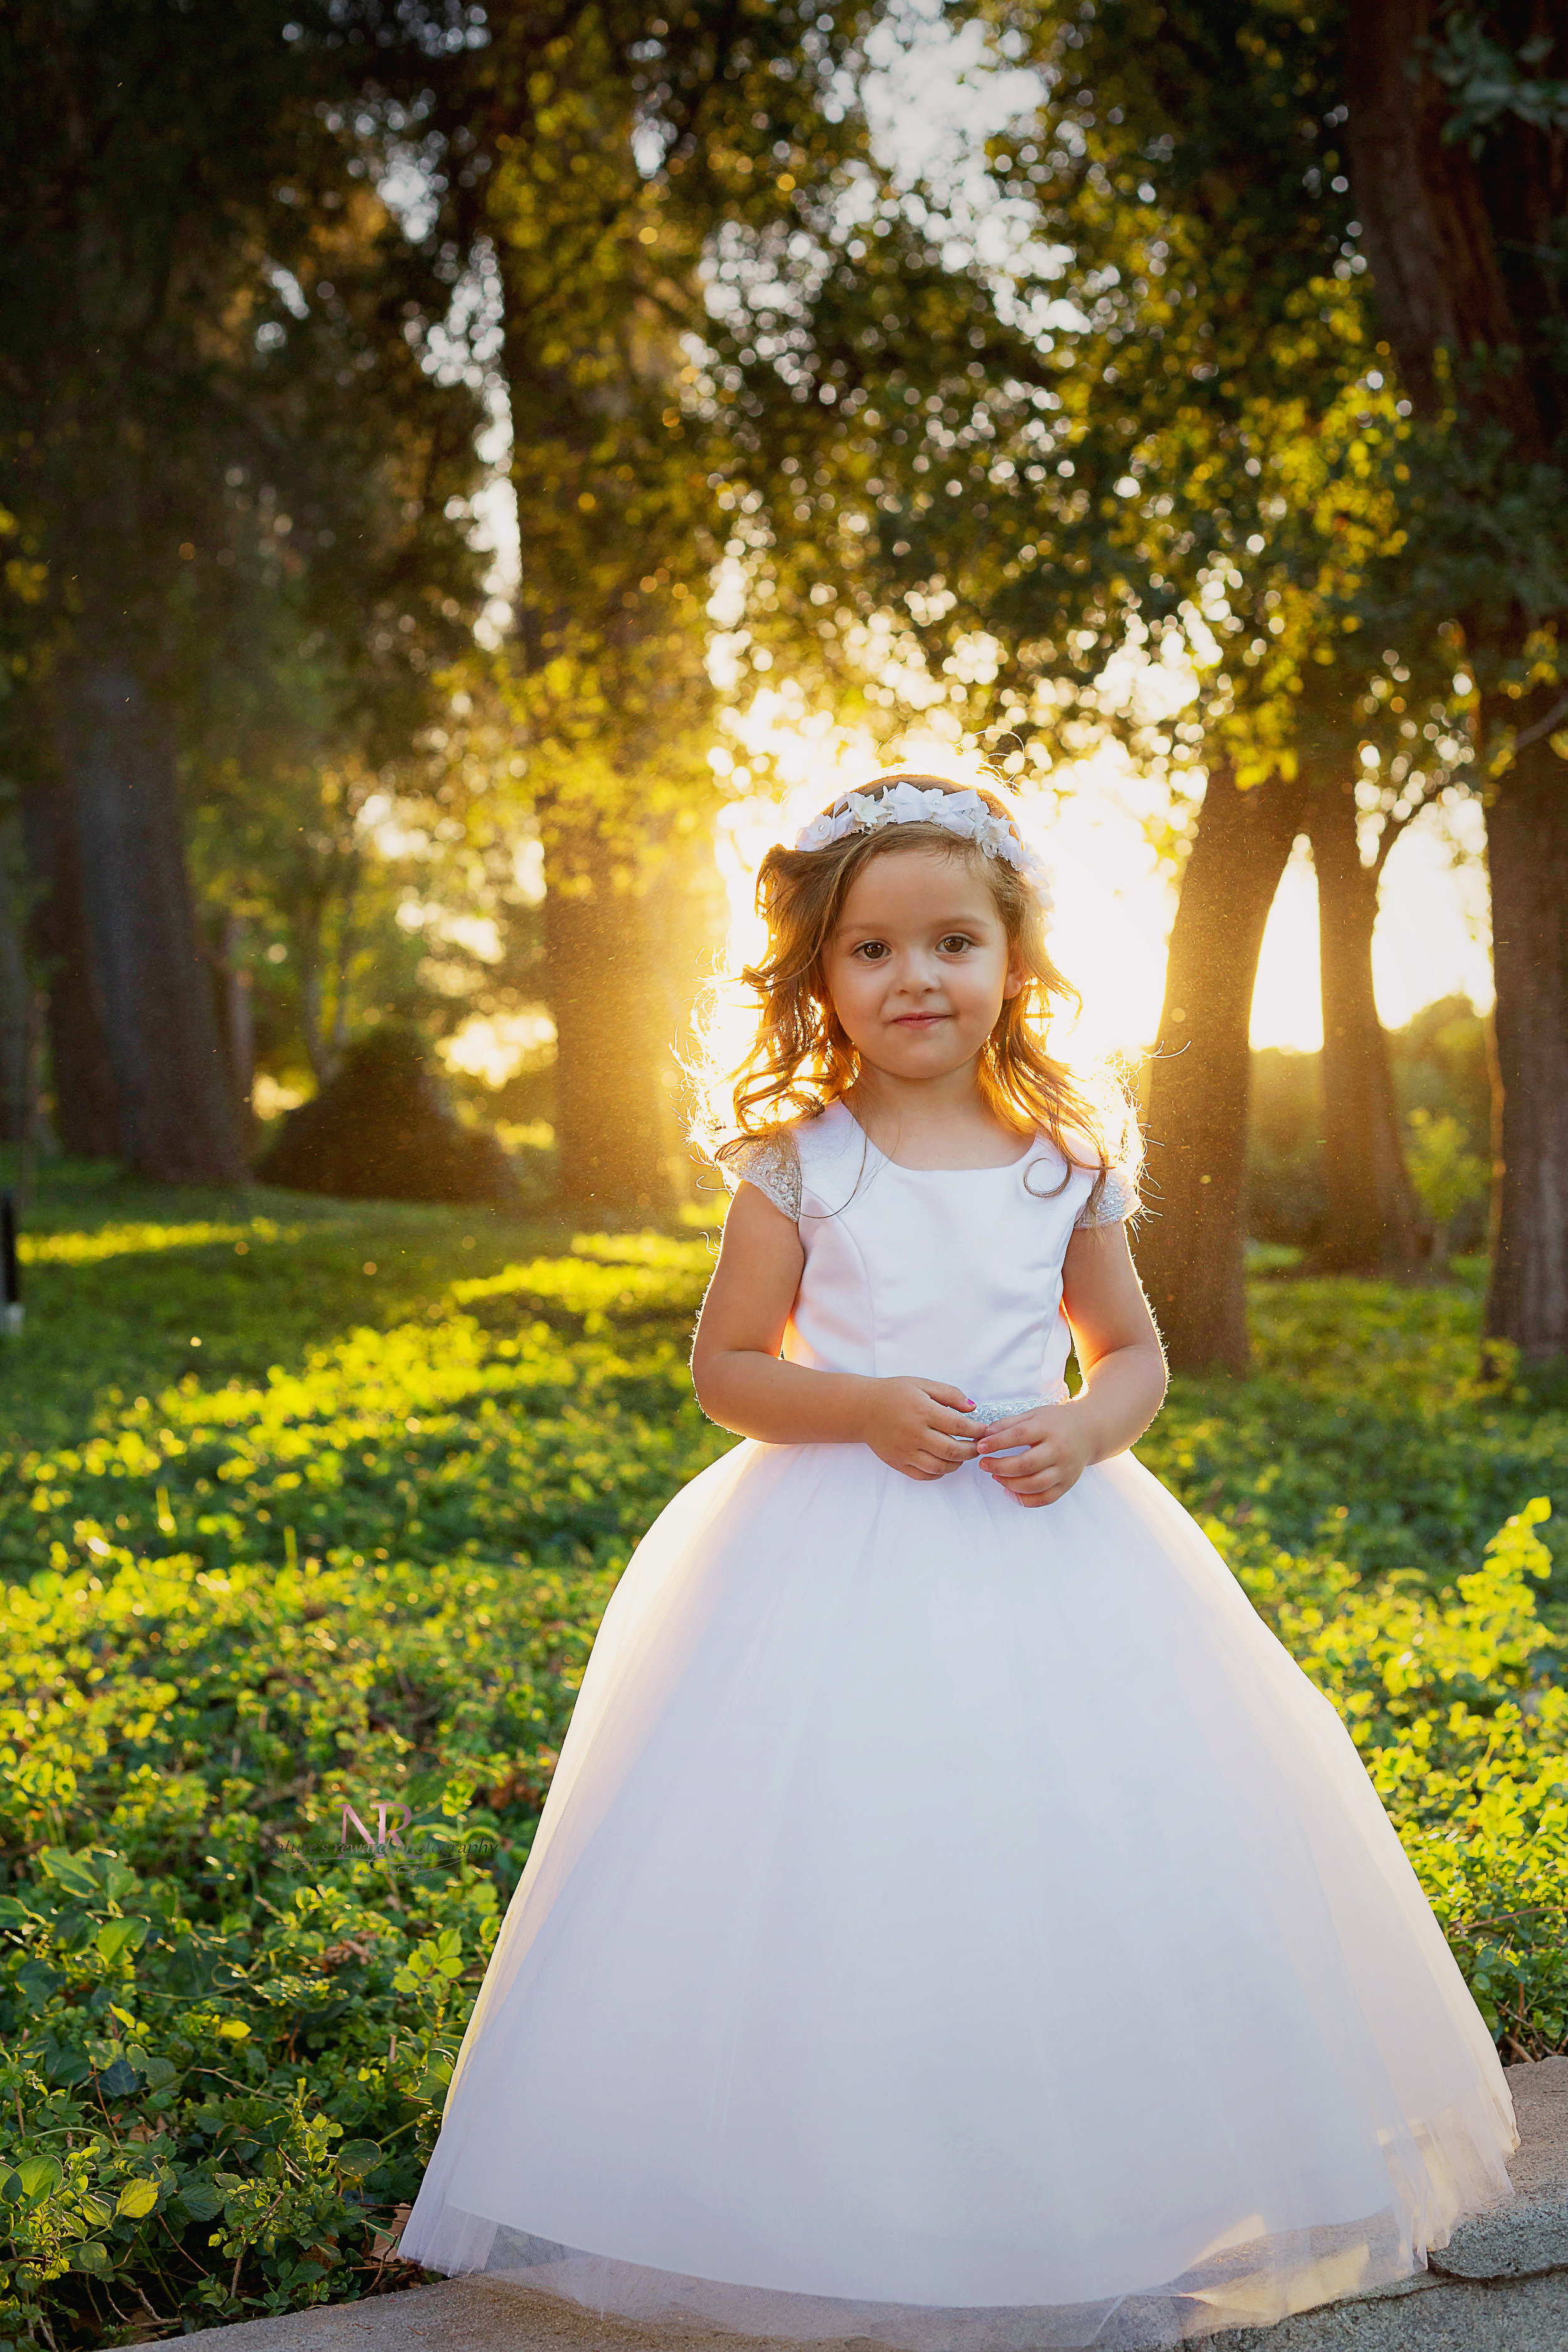 On her baptism dress.  With the sun!  And the Smile!  And omg the dust all lit up like that!  I have no other words!  This is just stunning to me!